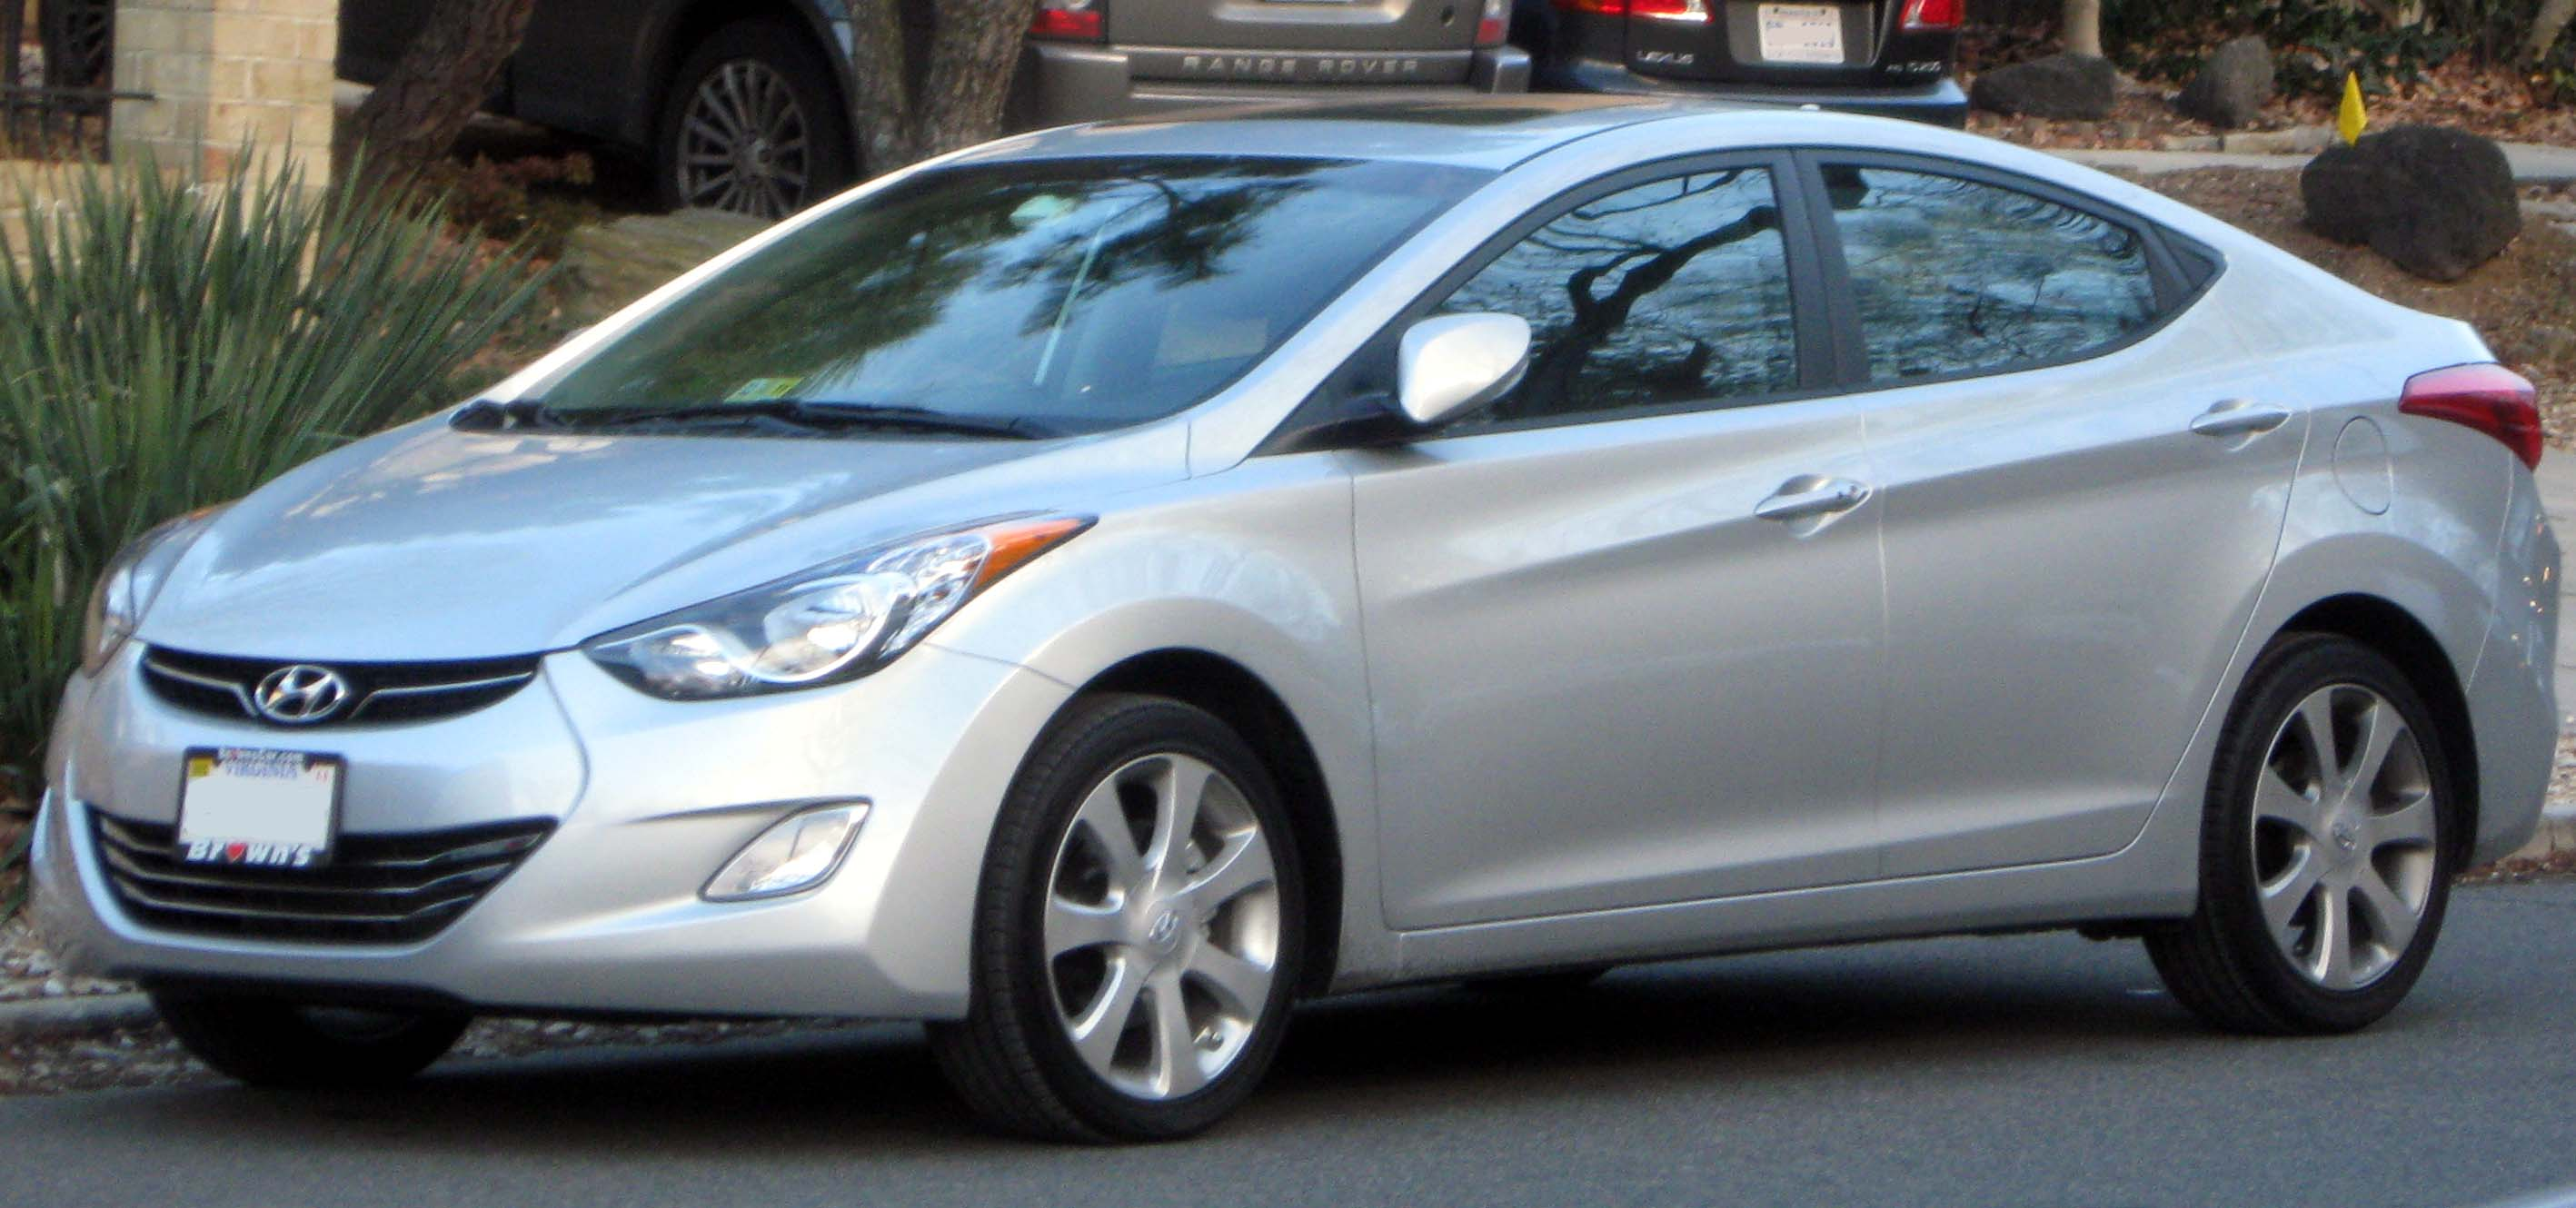 Hyundai Elantra Car Wallpapers Desktop Download